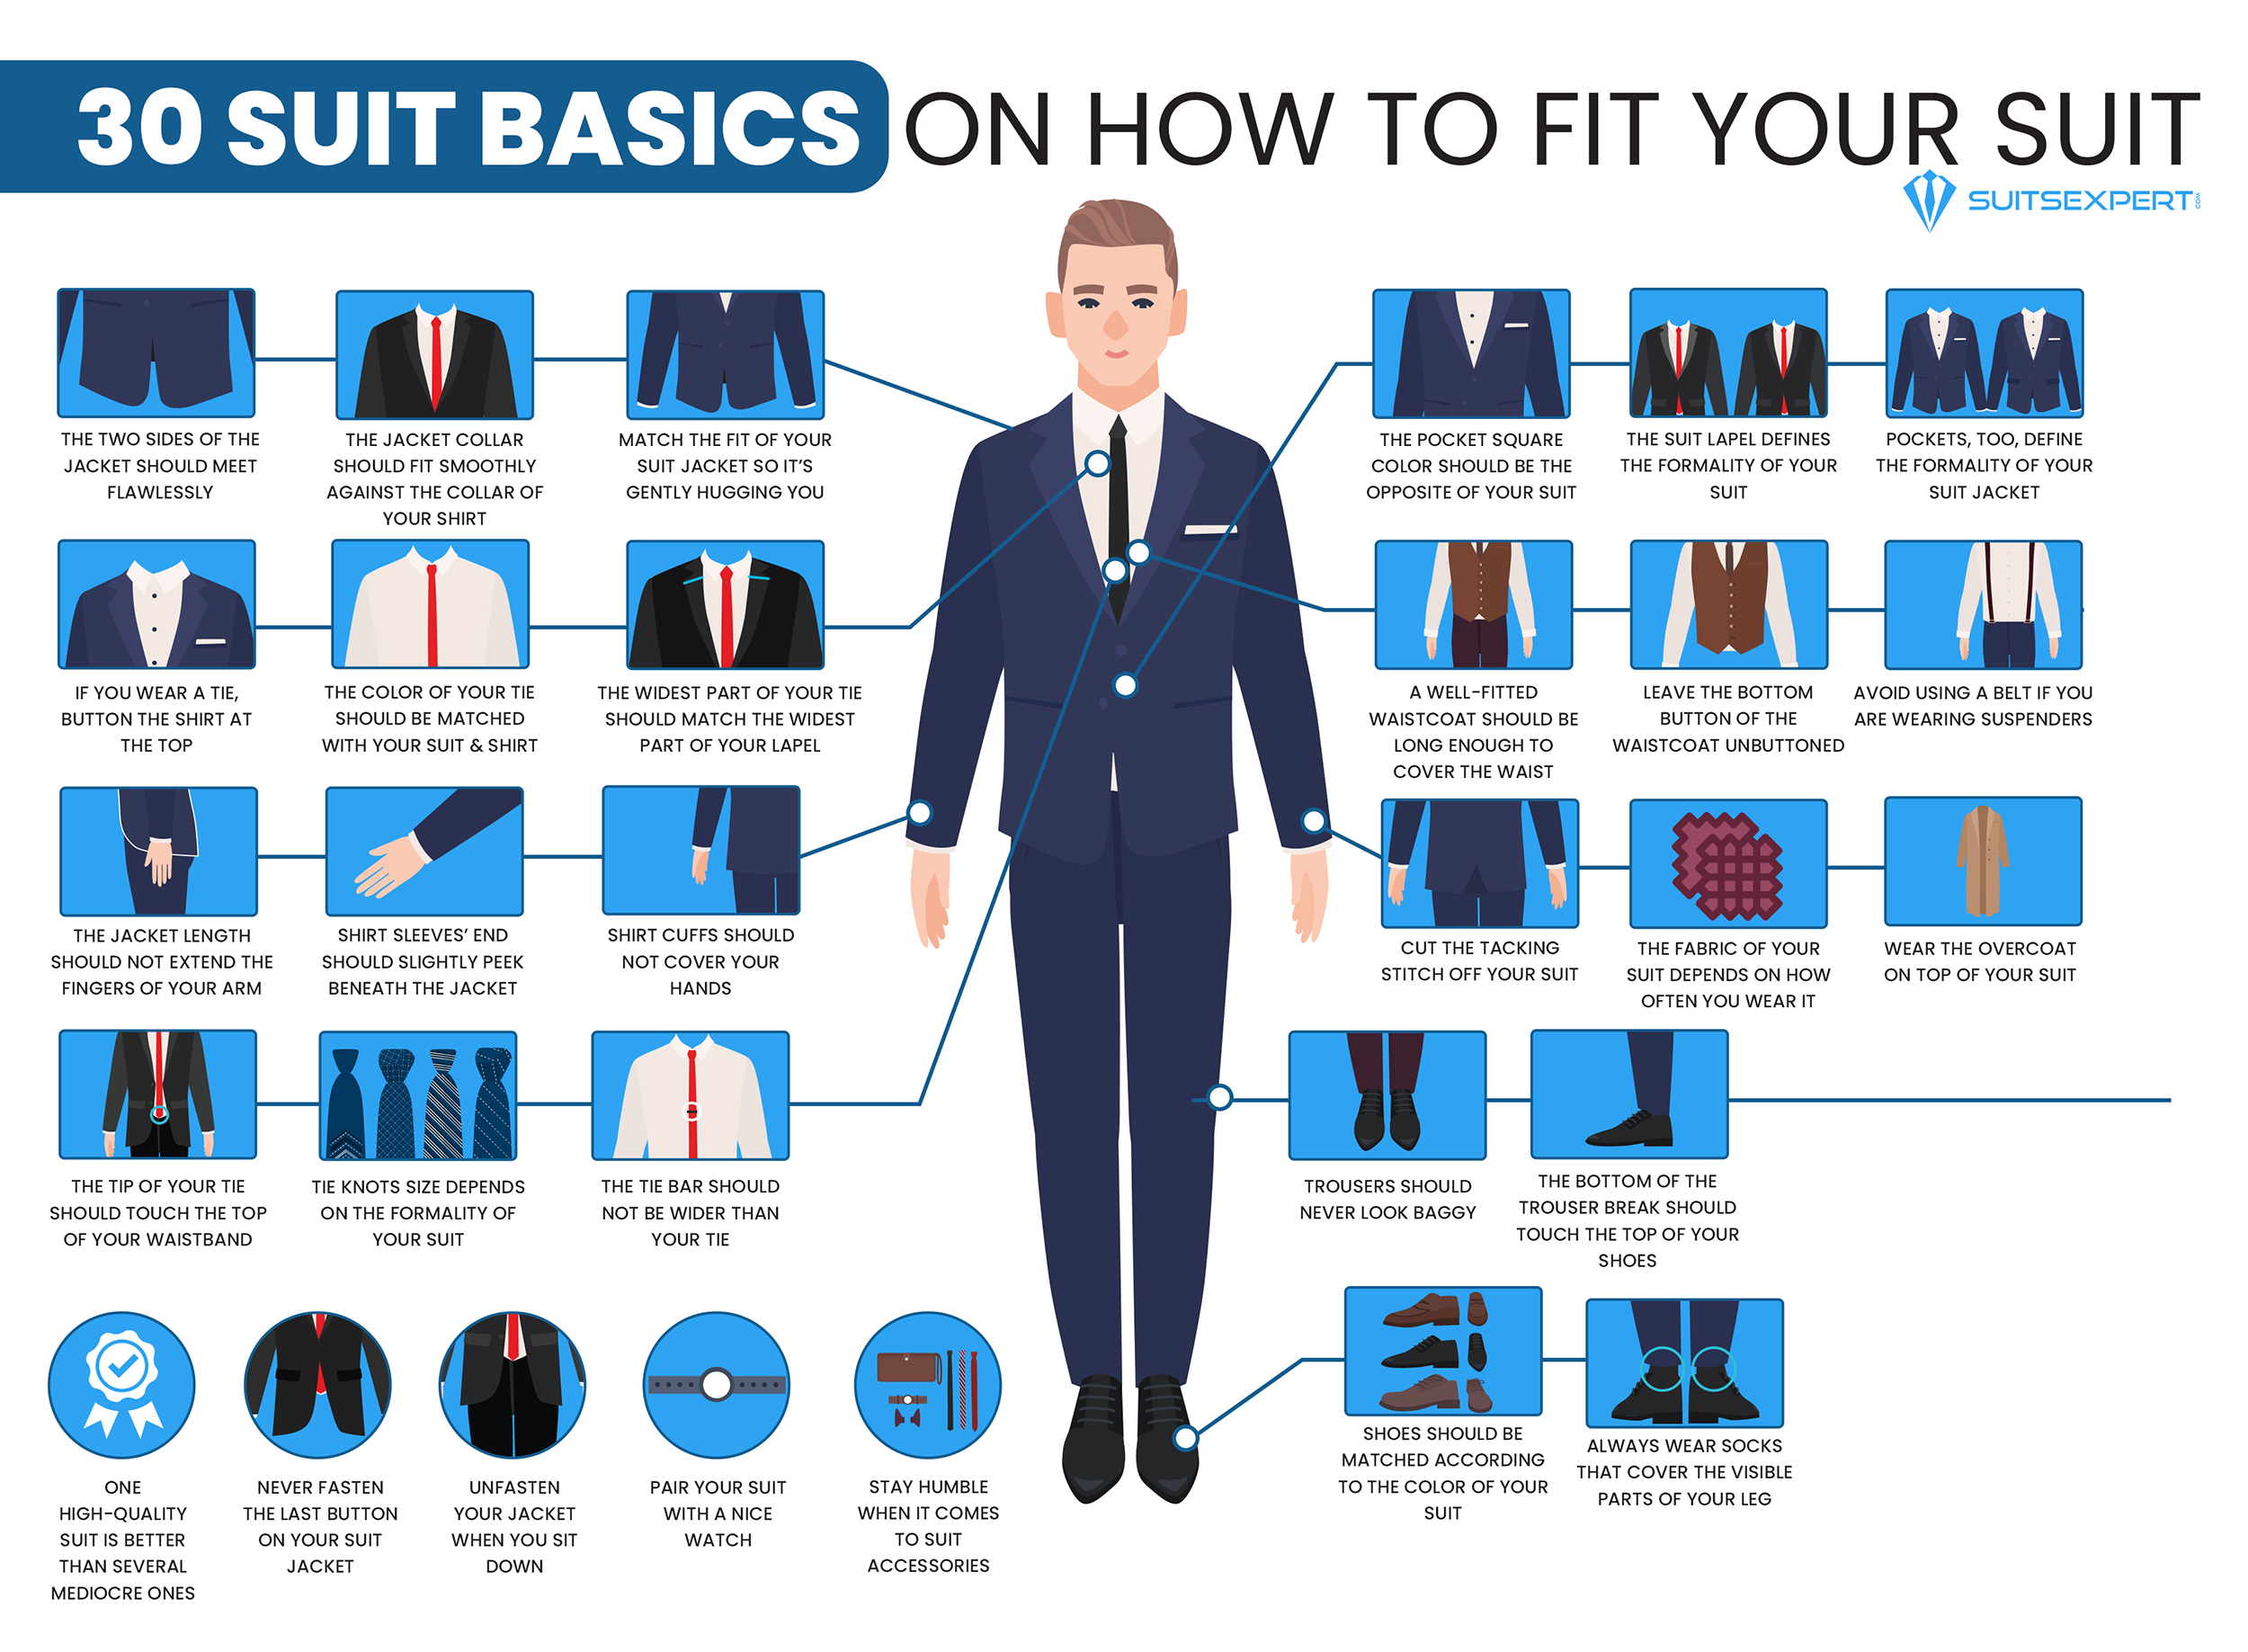 30 suit basics on how to fit your suit